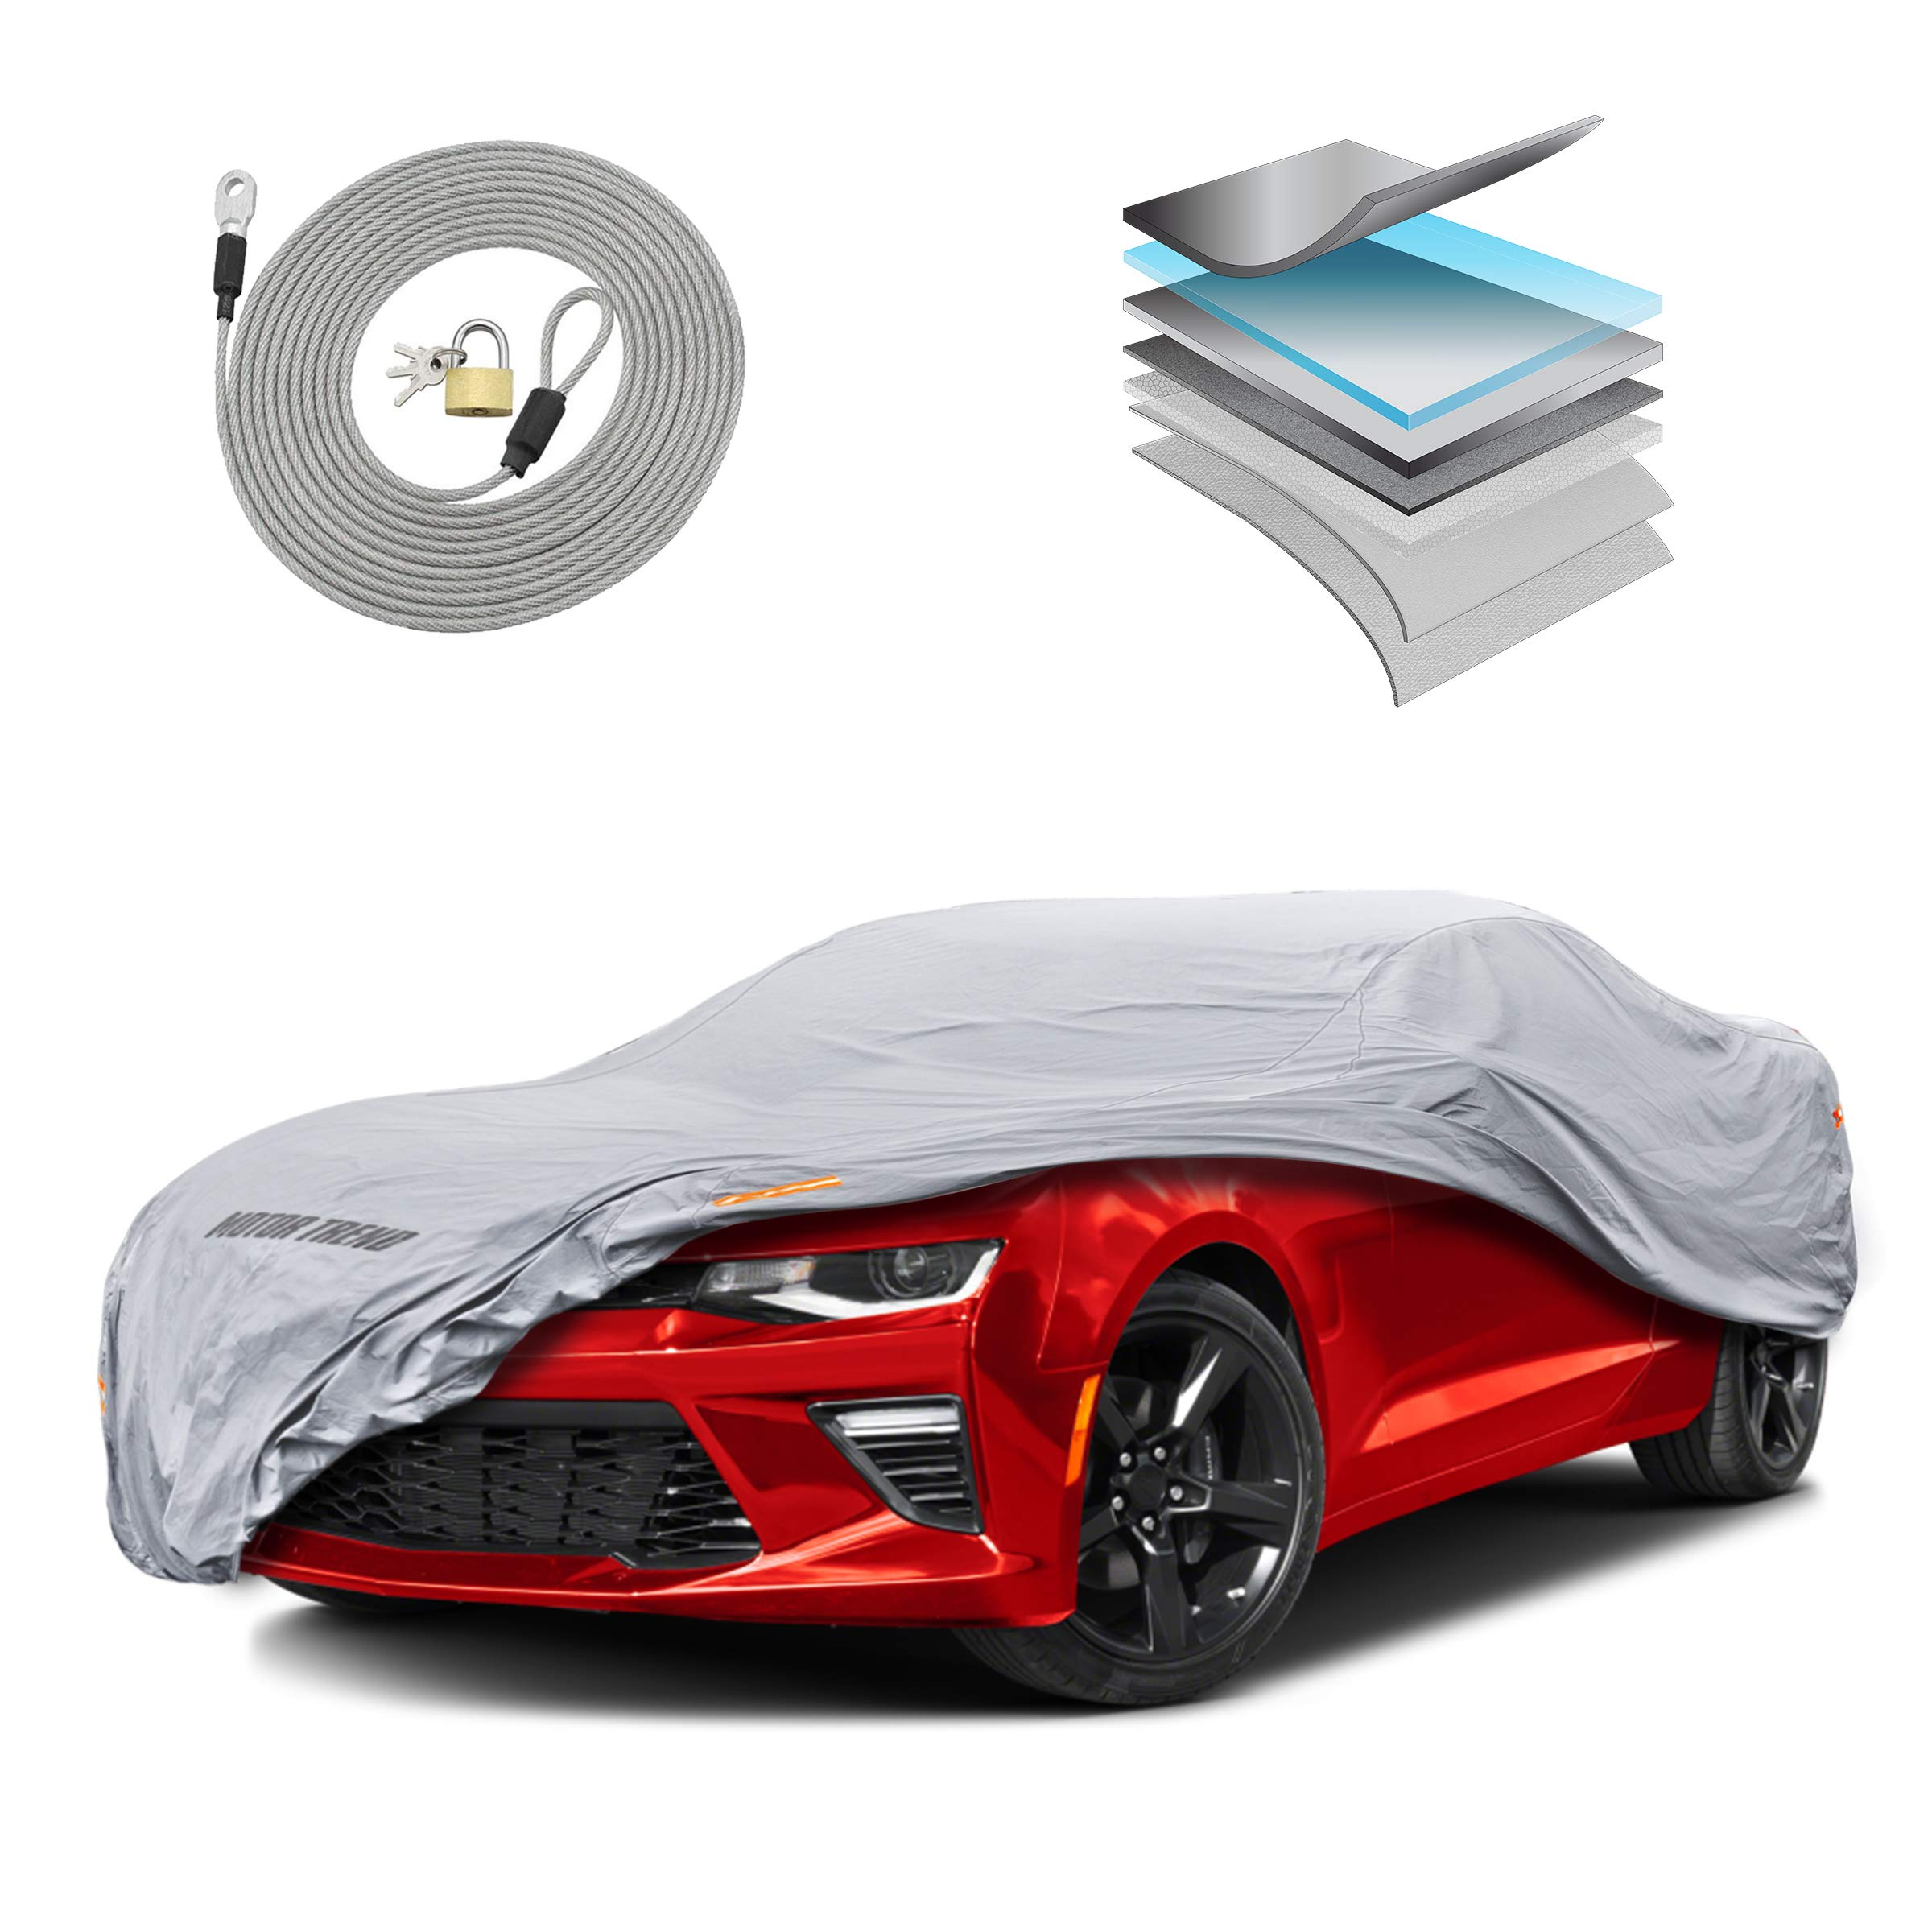 5 Layer Custom Fit Car Cover for Chevrolet Chevy Camaro Model Year 2010-2020